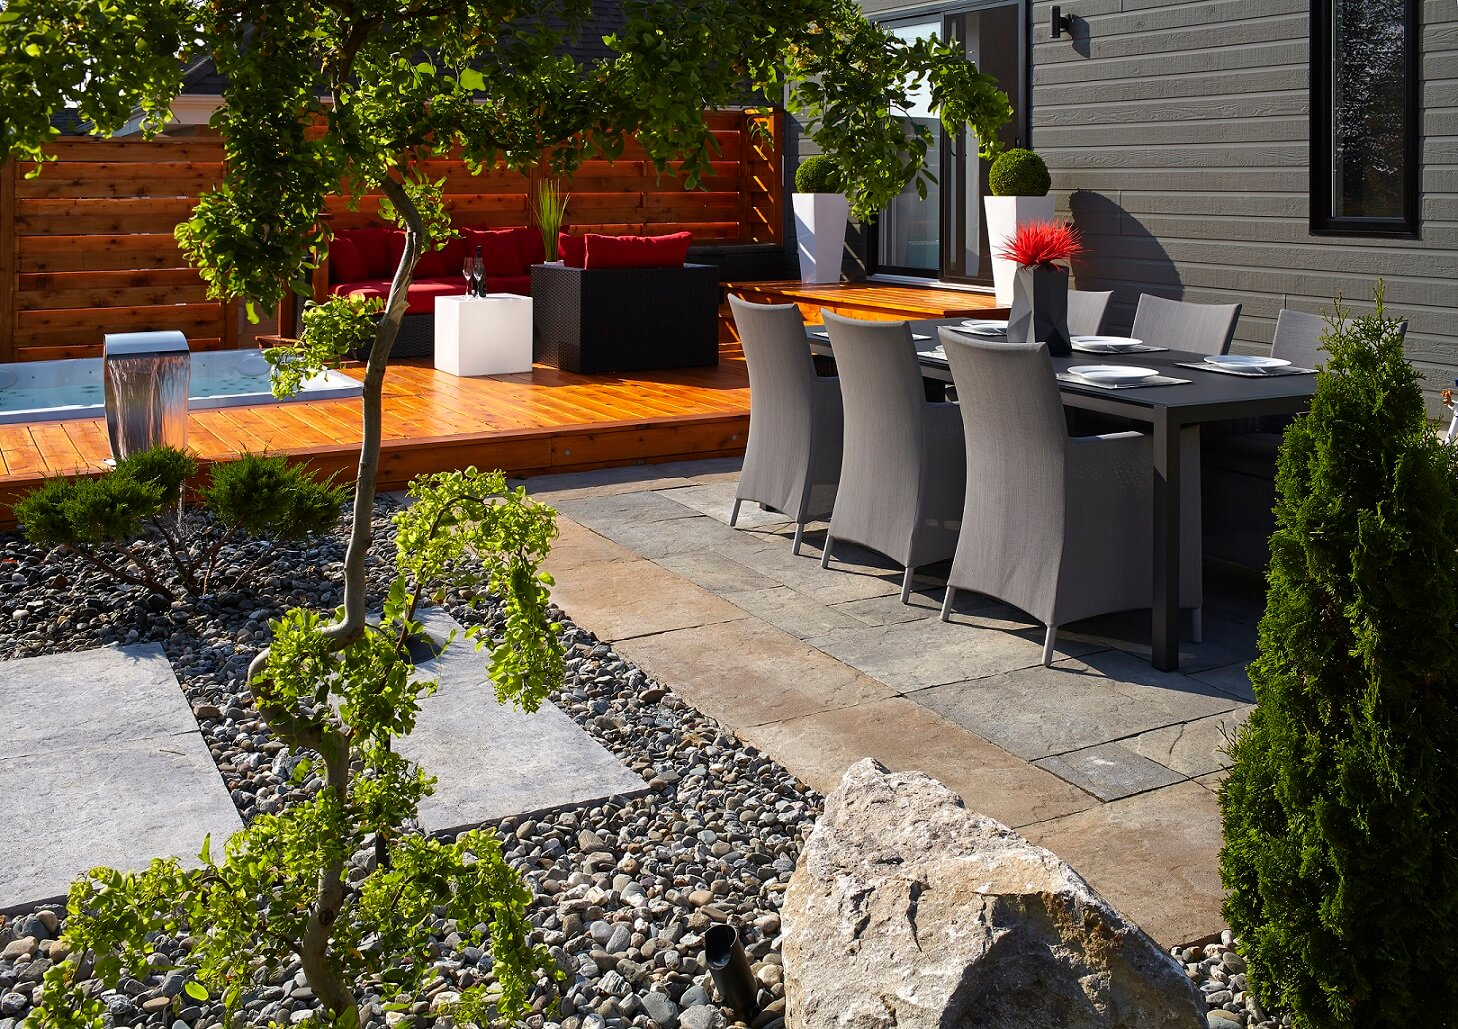 Ma onnex am nagement paysager on pinterest mondrian - Amenager une terrasse exterieure ...